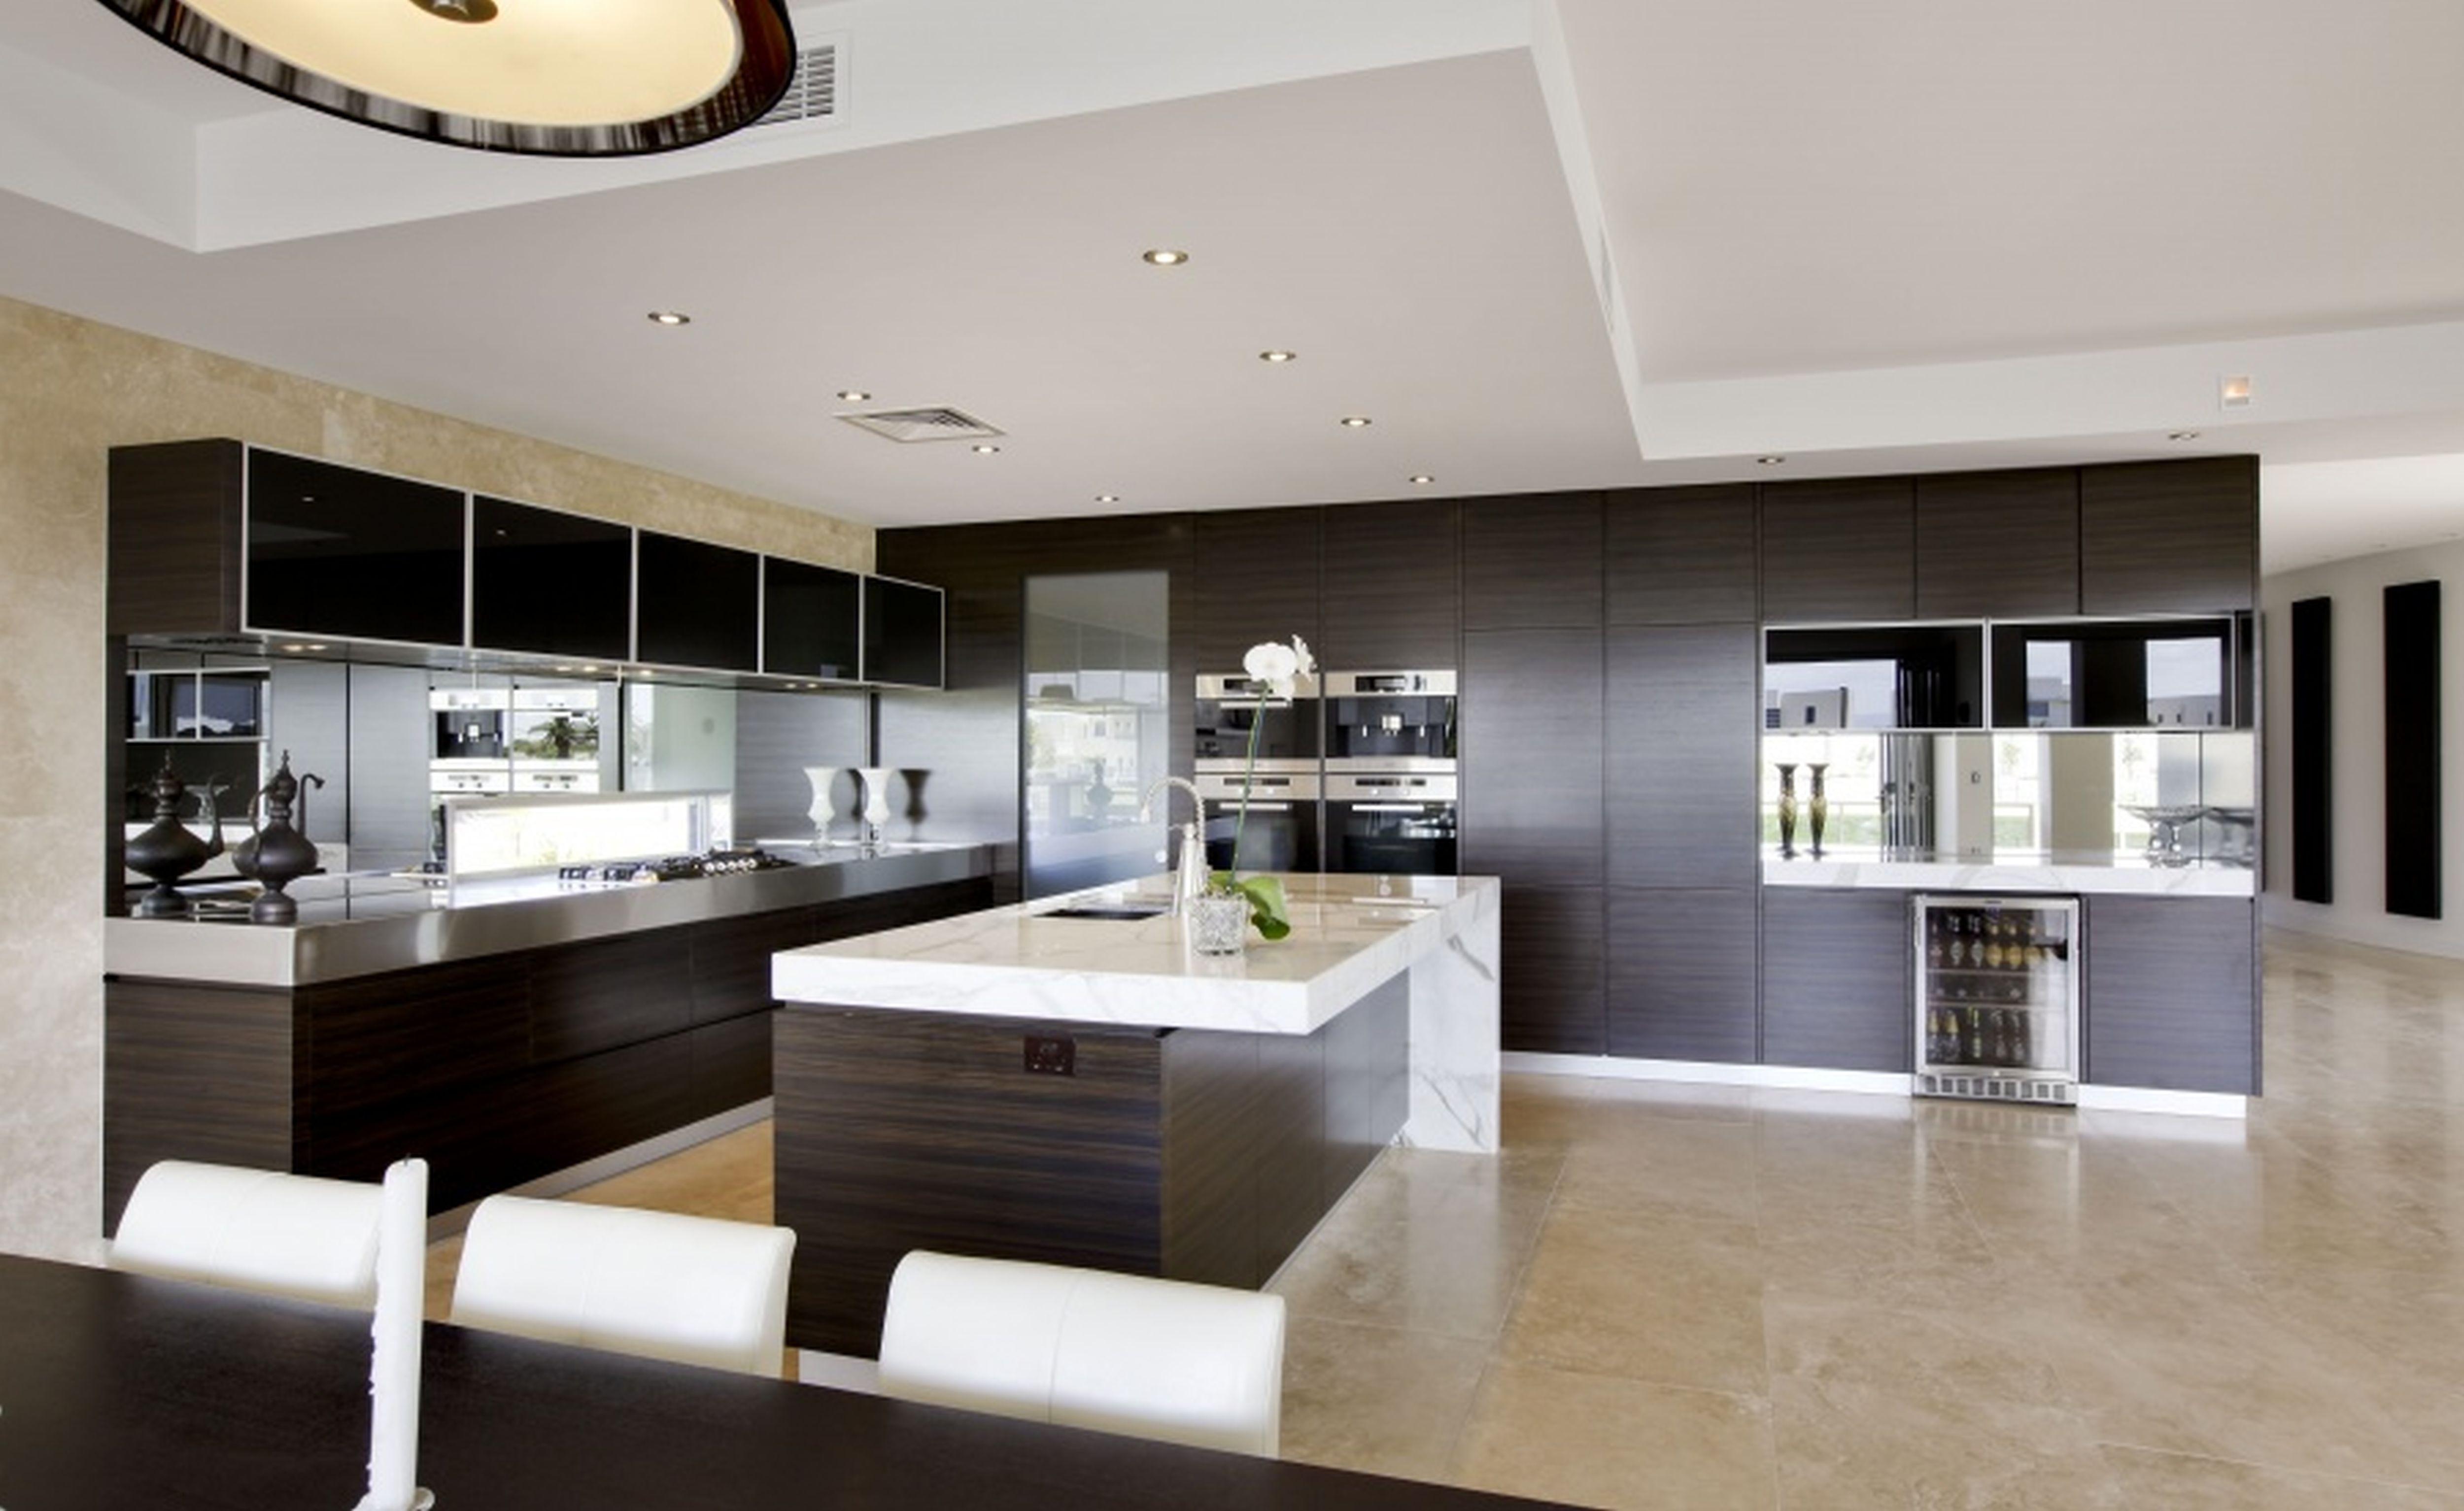 Modern mad home interior design ideas beautiful kitchen for Big island kitchen design